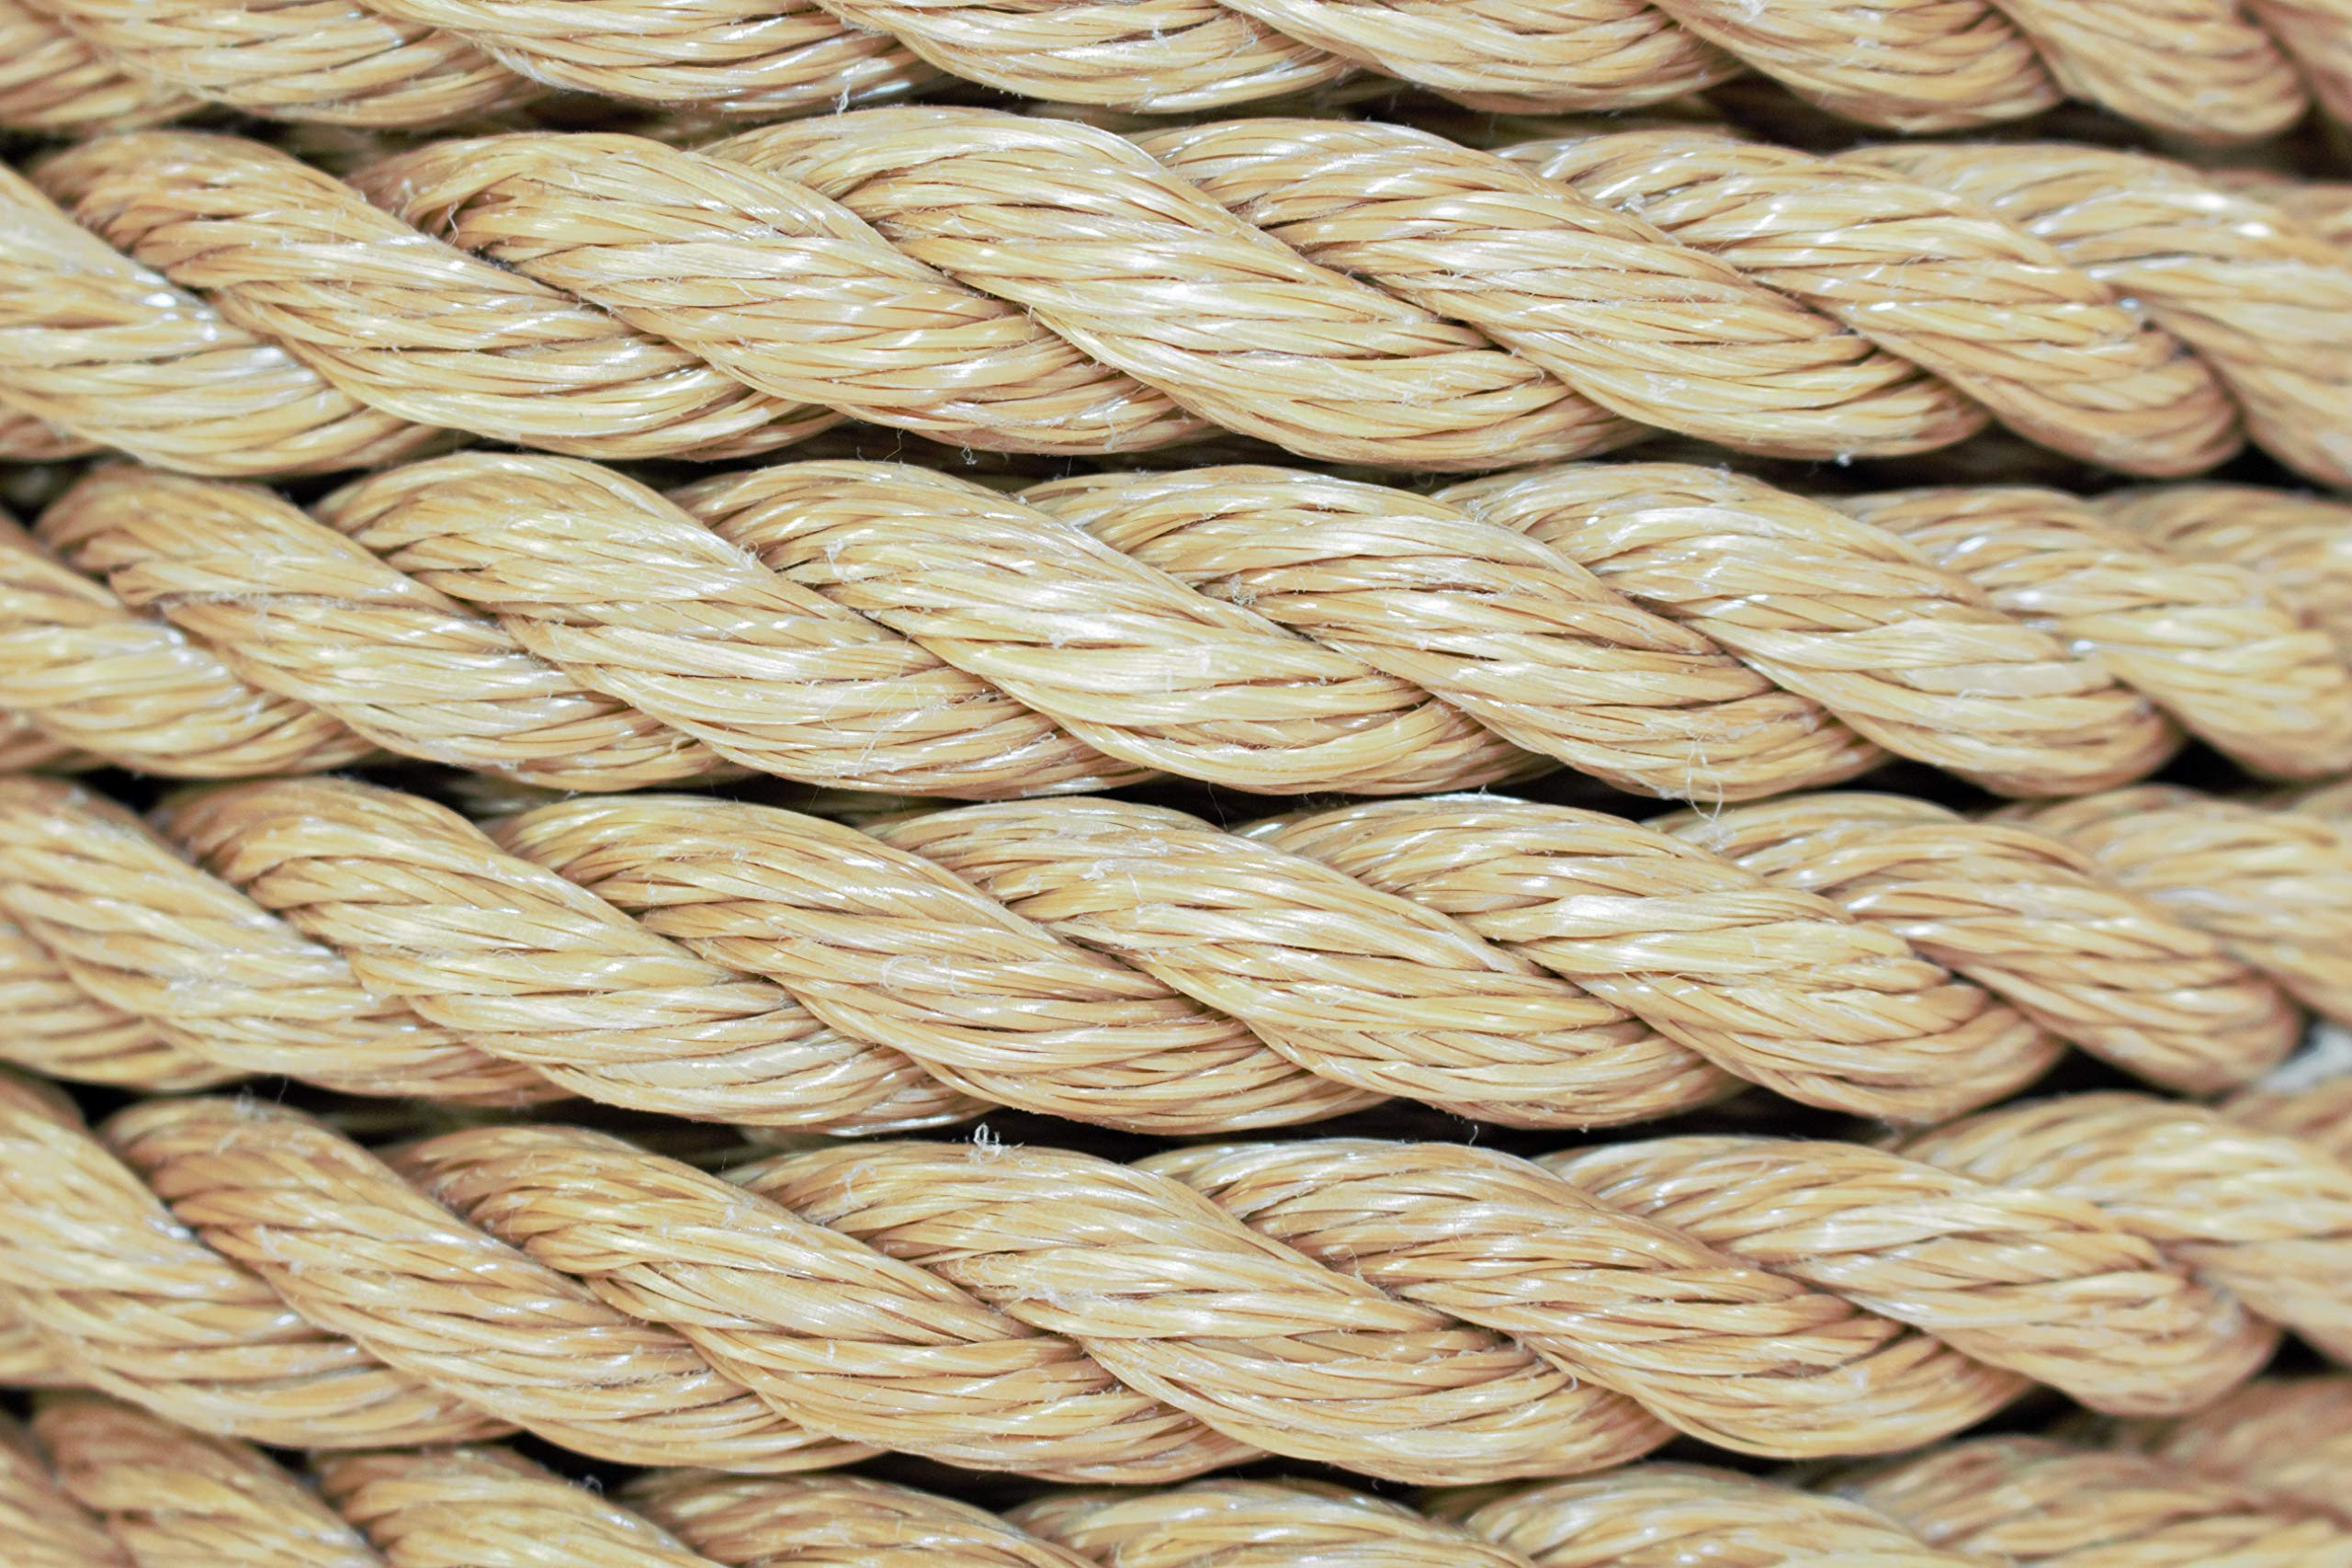 SGT KNOTS ProManila Rope (3/4 inch) UnManila Tan Twisted 3 Strand Polypropylene Cord - Moisture, UV, and Chemical Resistant - Marine, DIY Projects, Crafts, Commercial, Indoor/Outdoor (200 ft) by SGT KNOTS